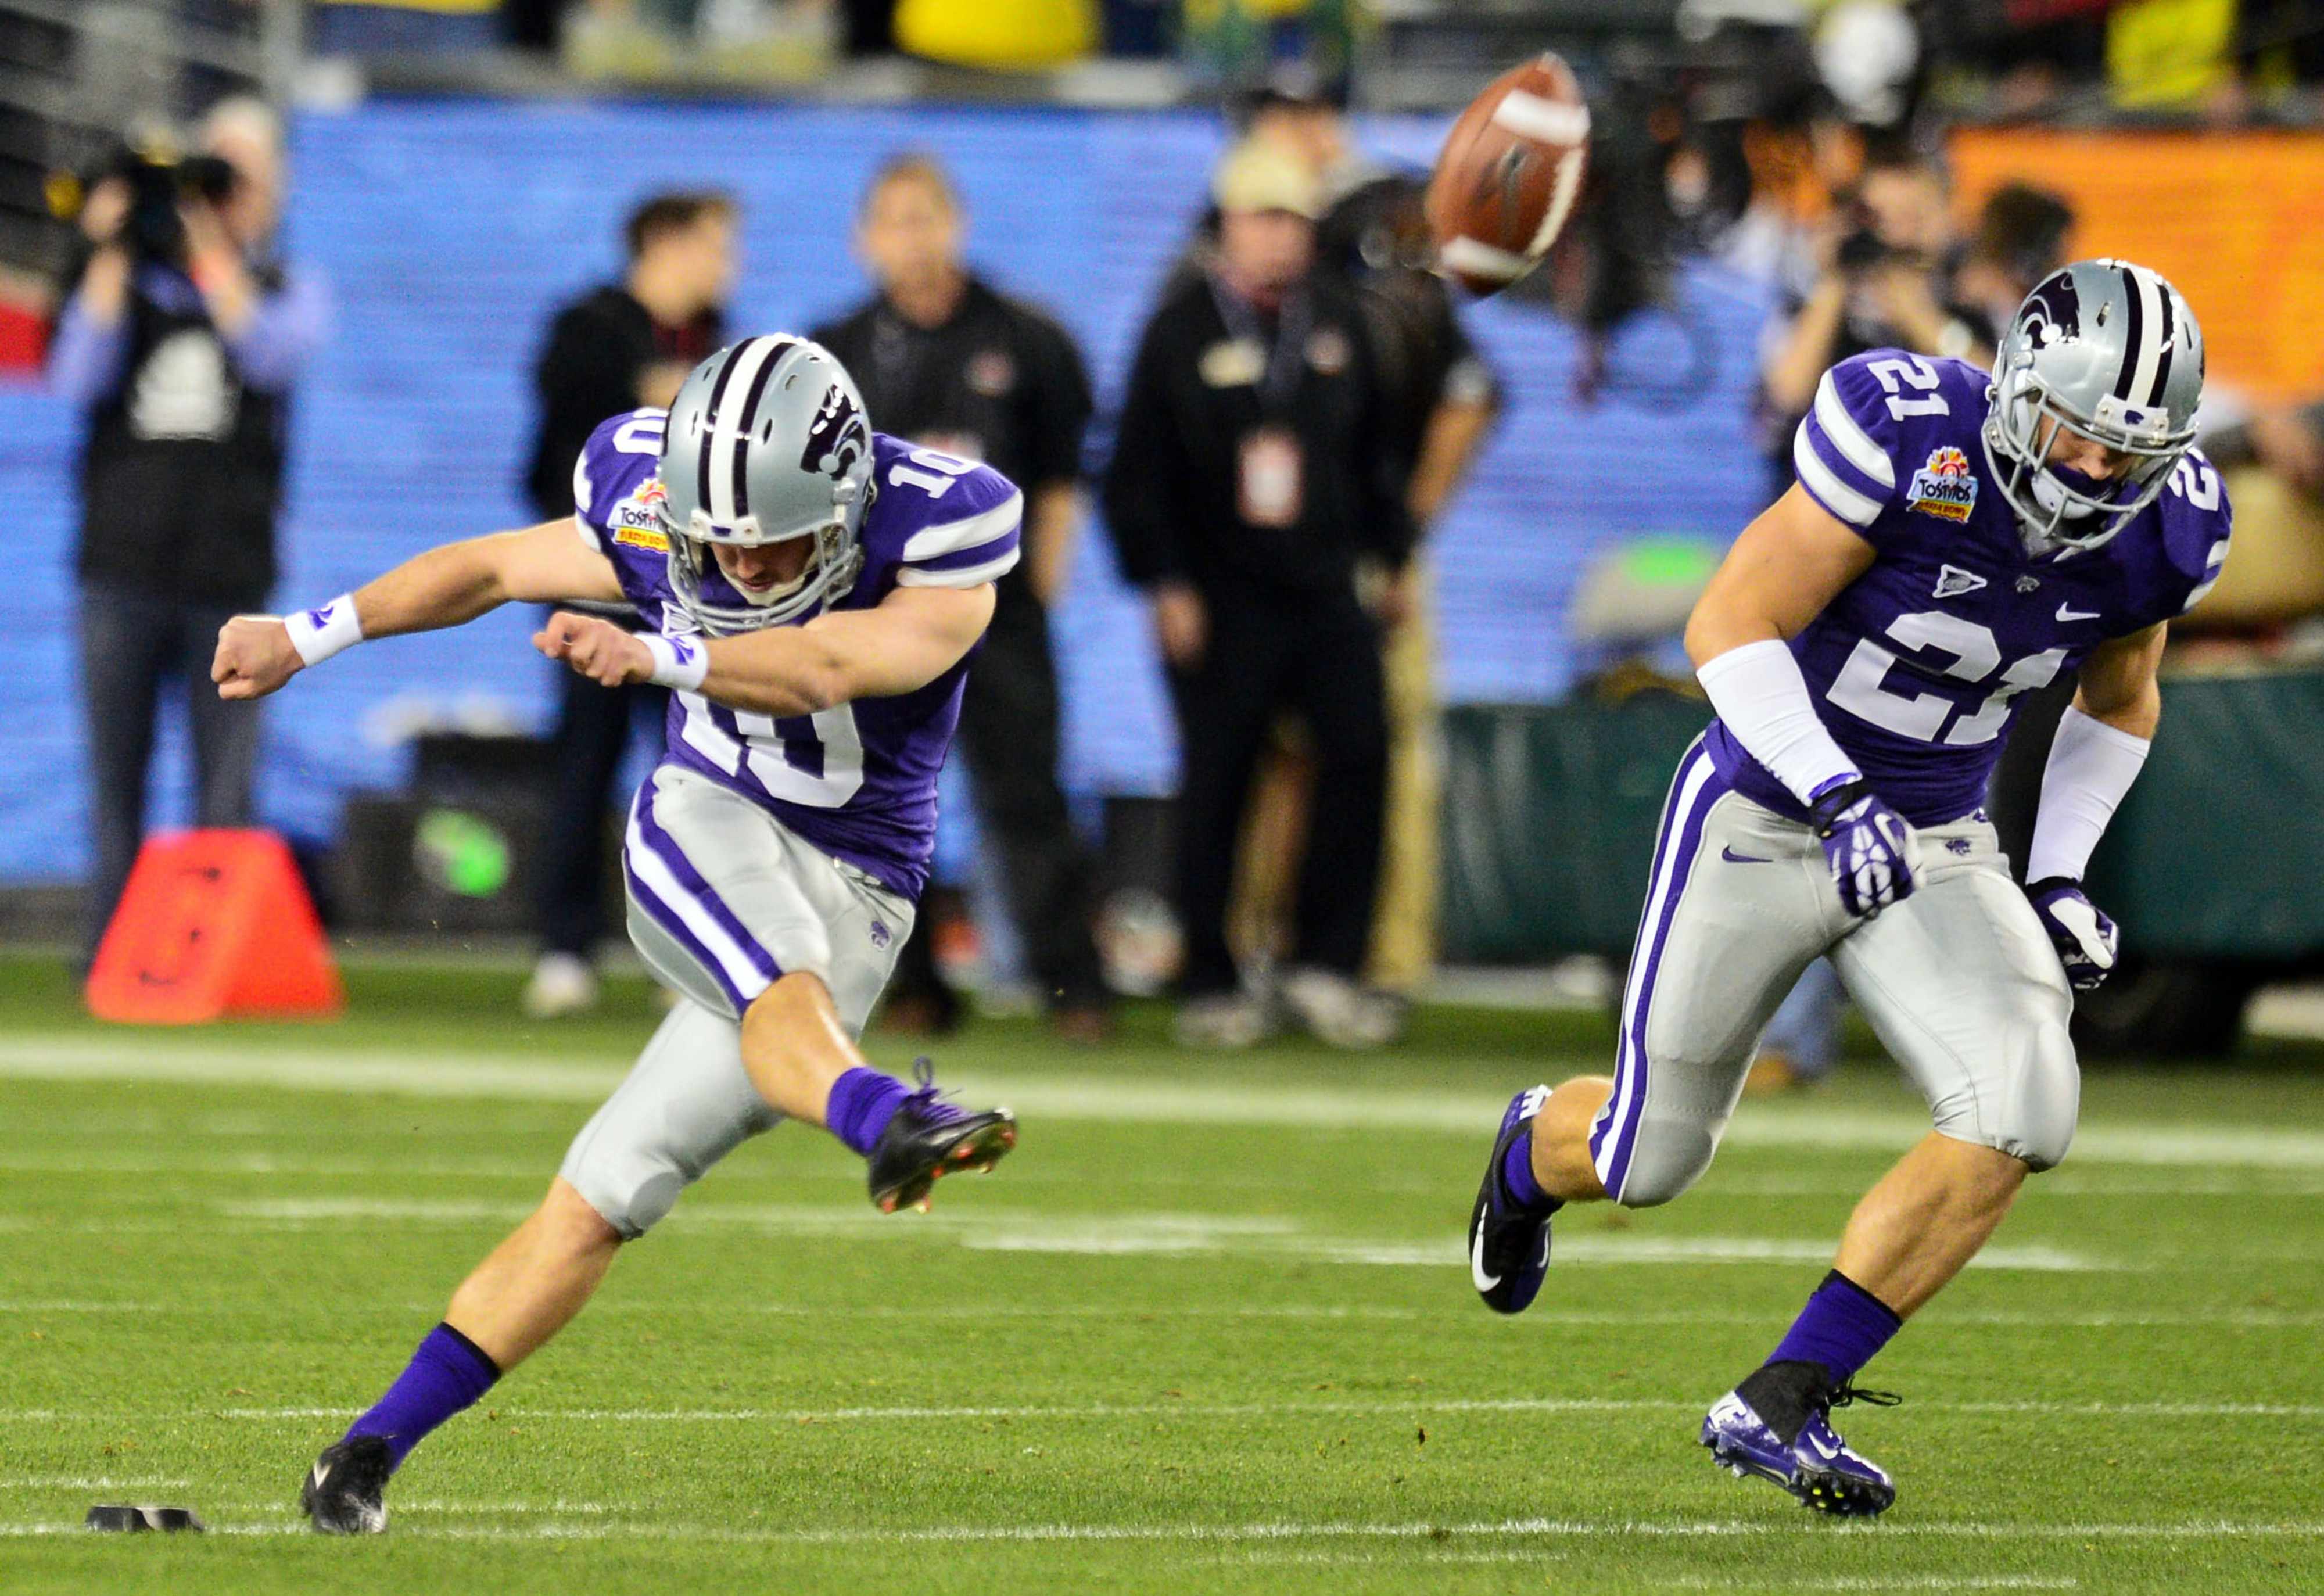 Anthony Cantele was underrated as a kickoff specialist. Will Dillon Wilson be the man to step up and replace him?